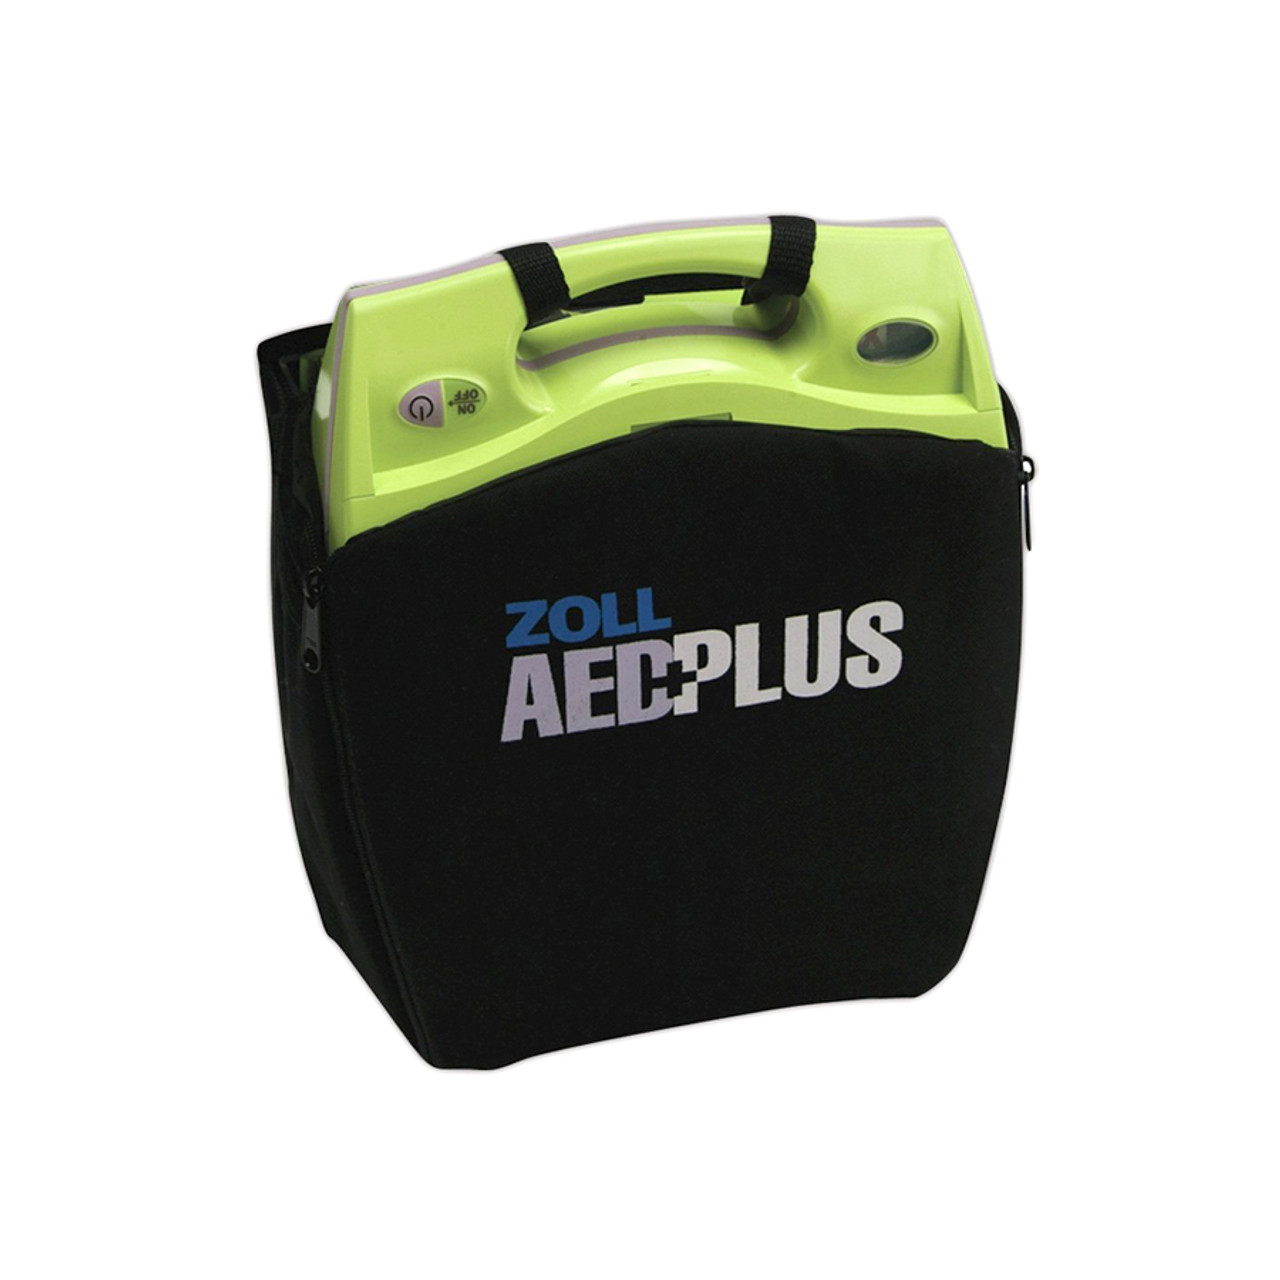 Zoll AED Plus Carry Bag, Black